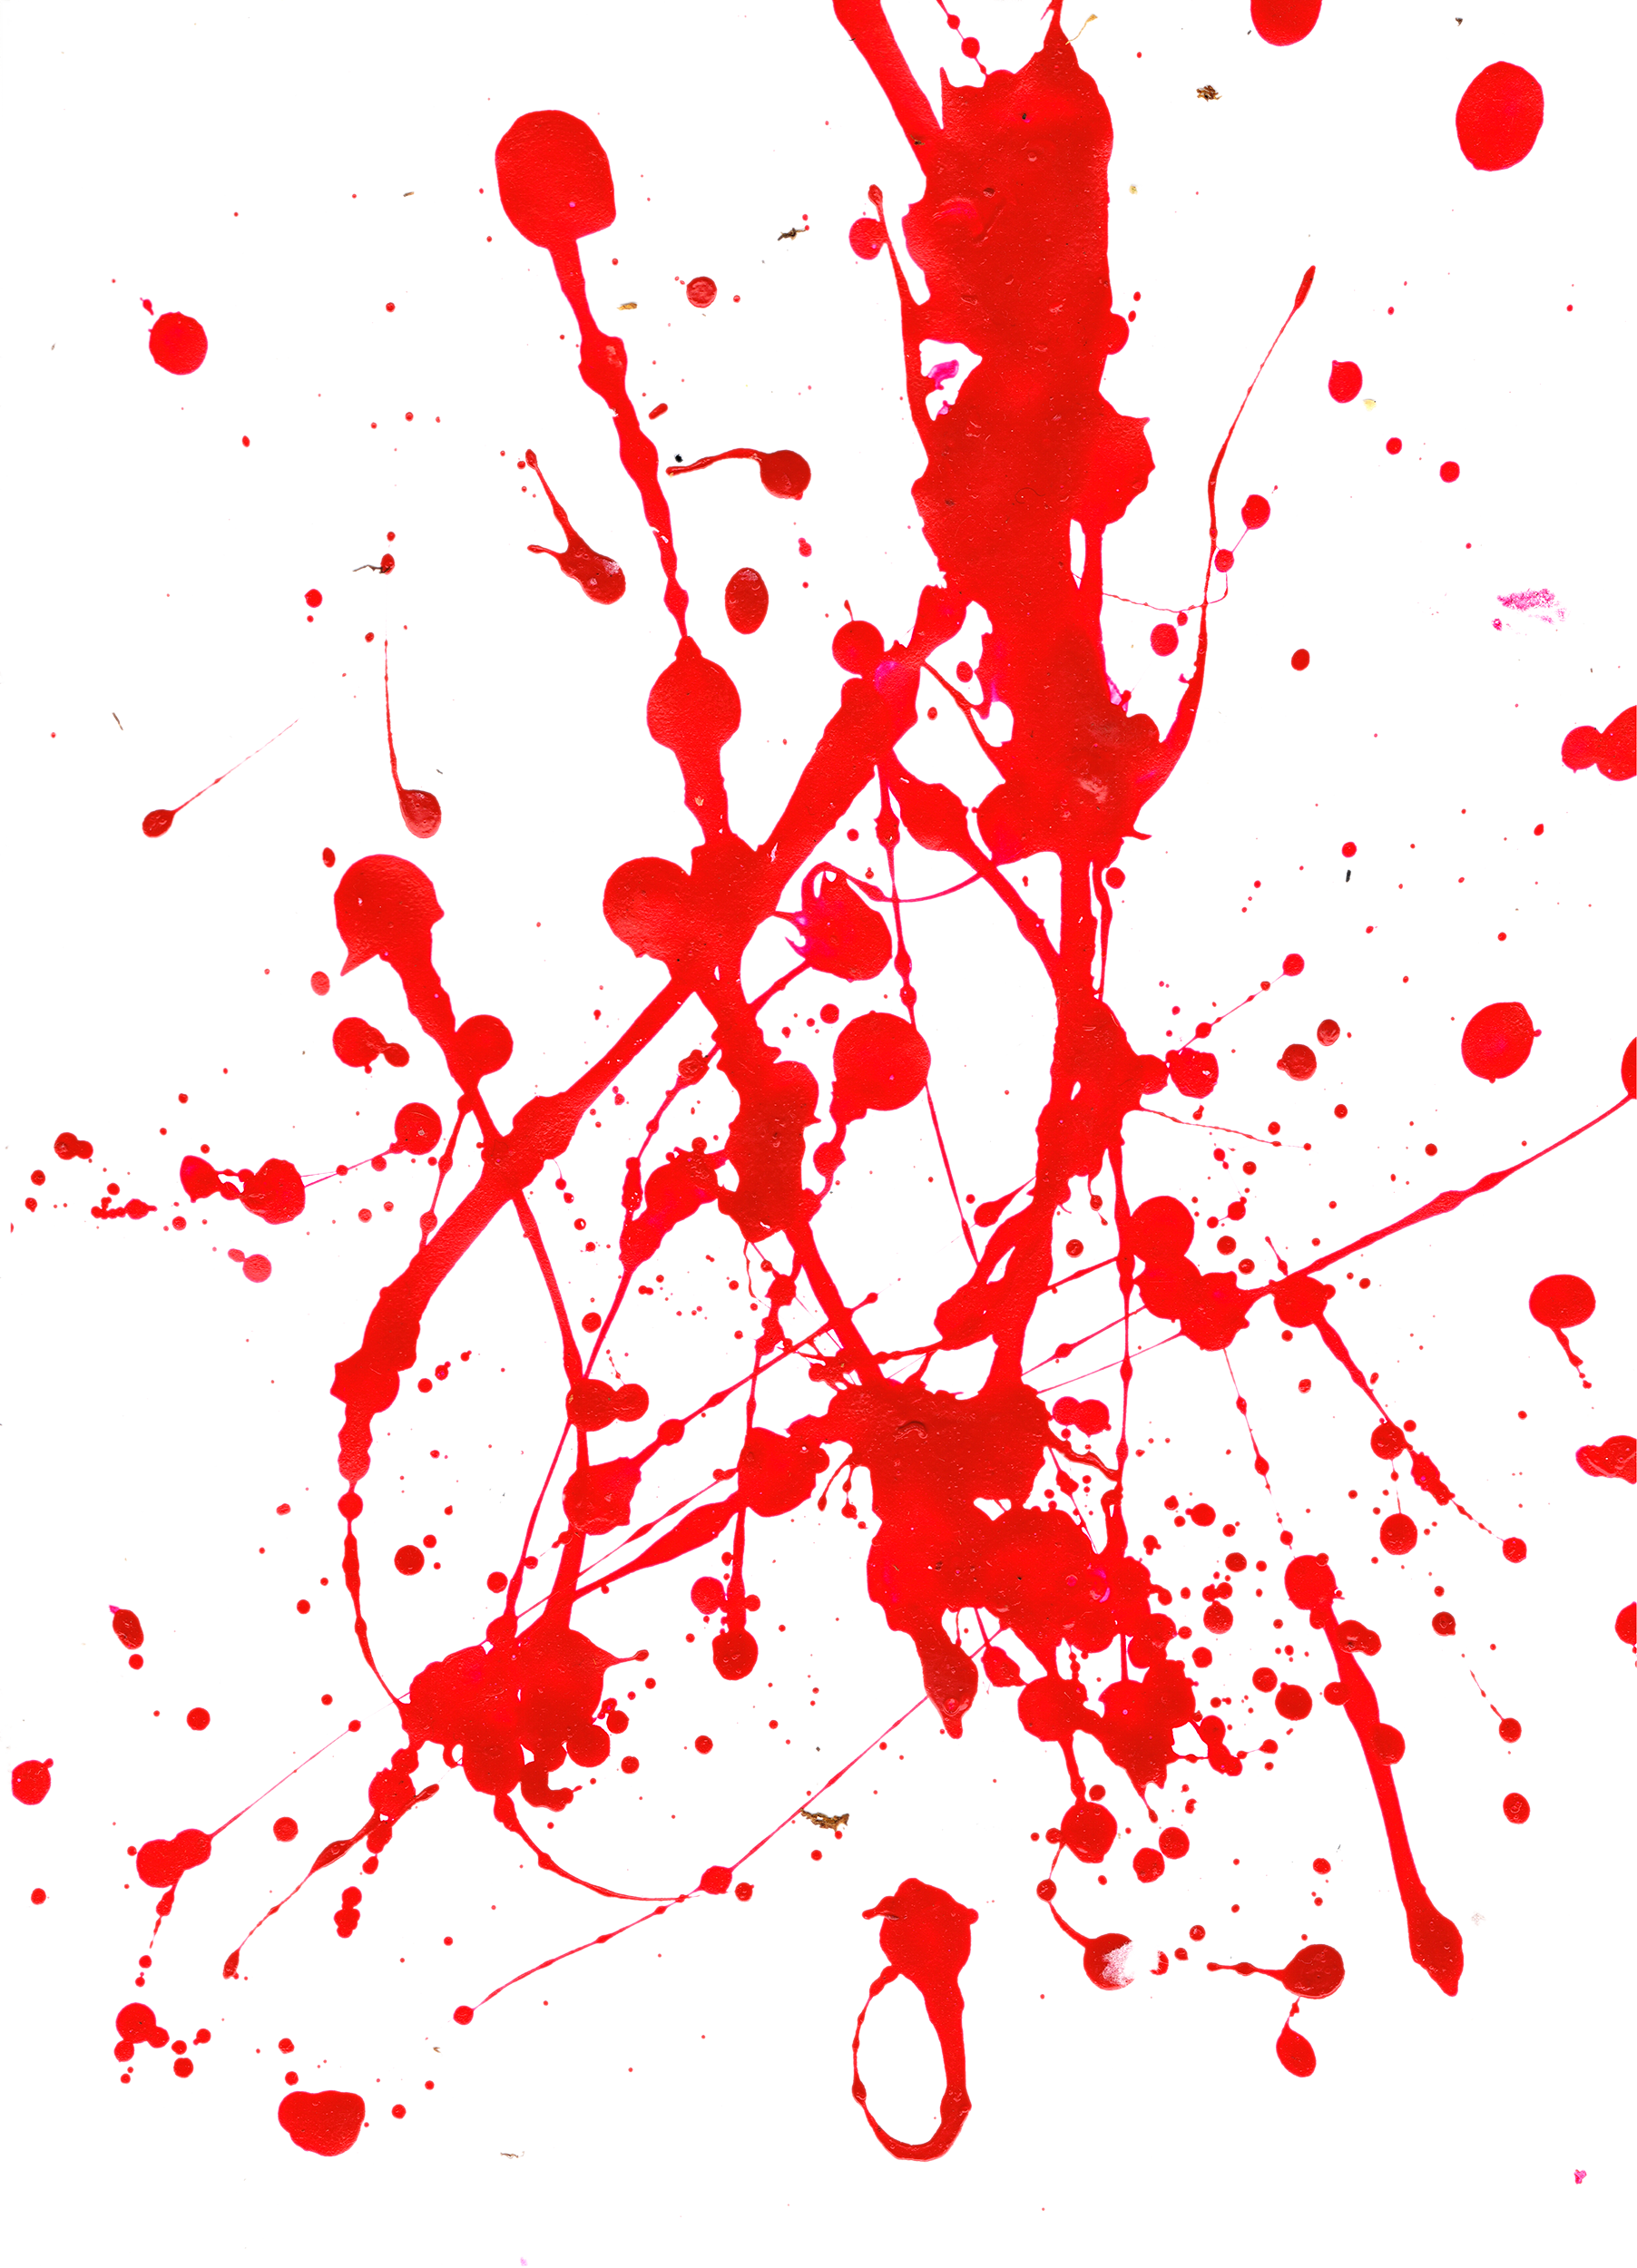 Red paint splat png. Google image result for